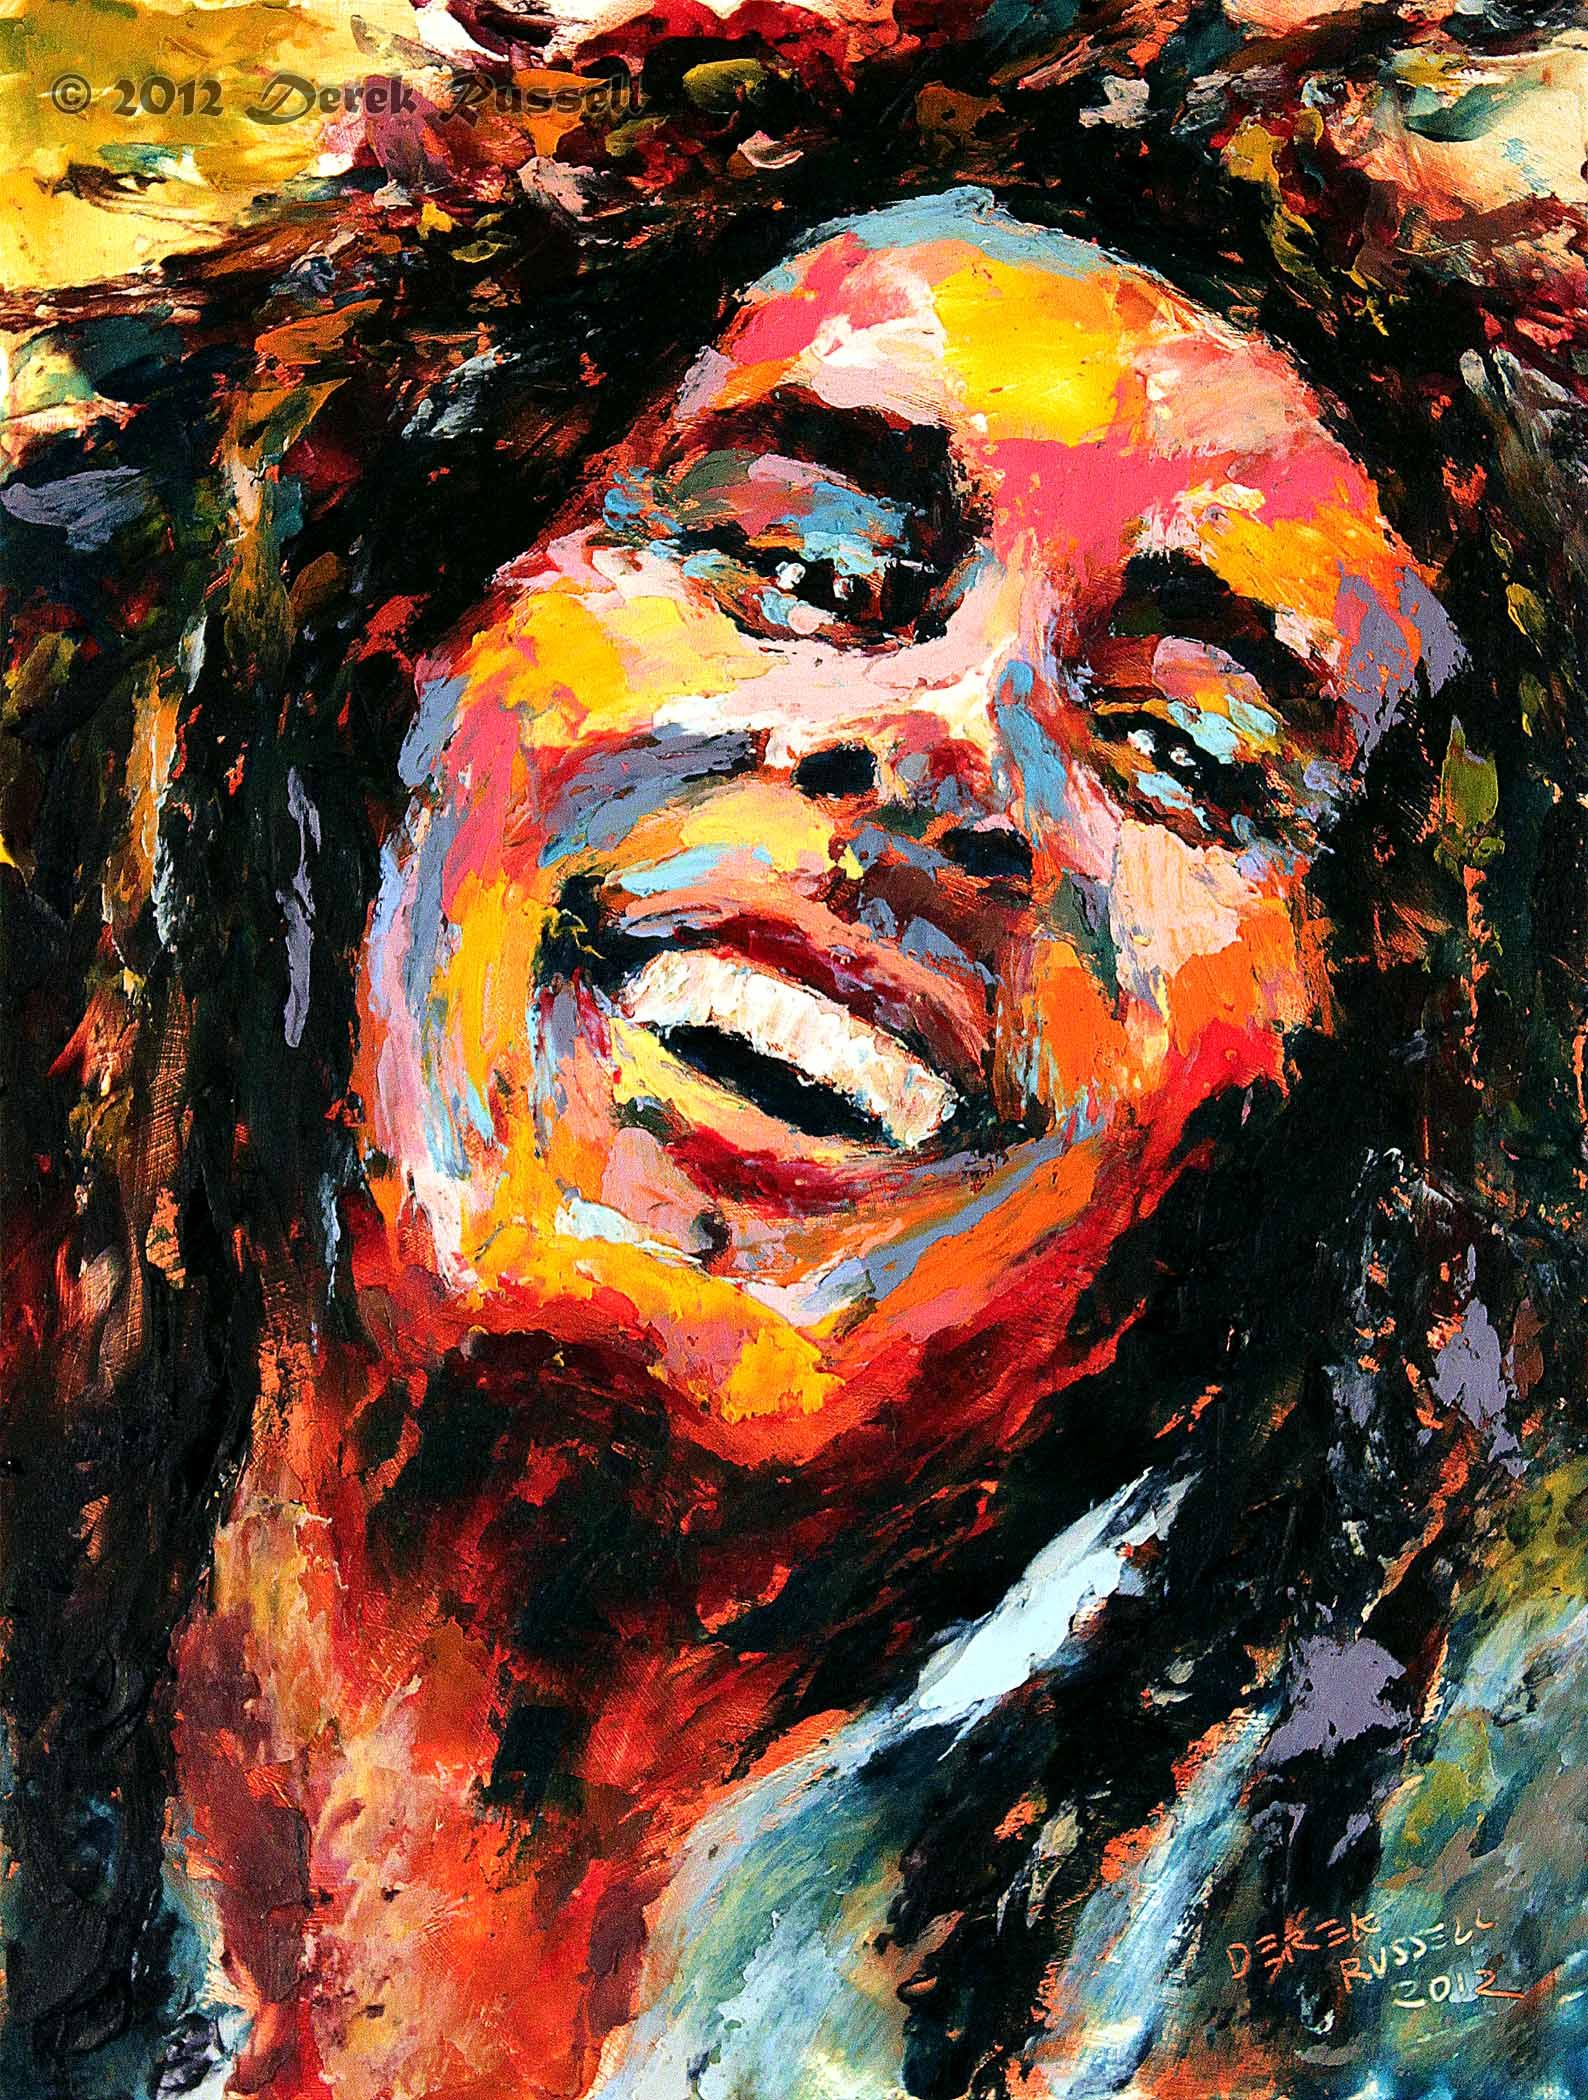 Famous Art Paintings Bob Marley Original Oil Portrait Painting Artist Derek Russell 2012